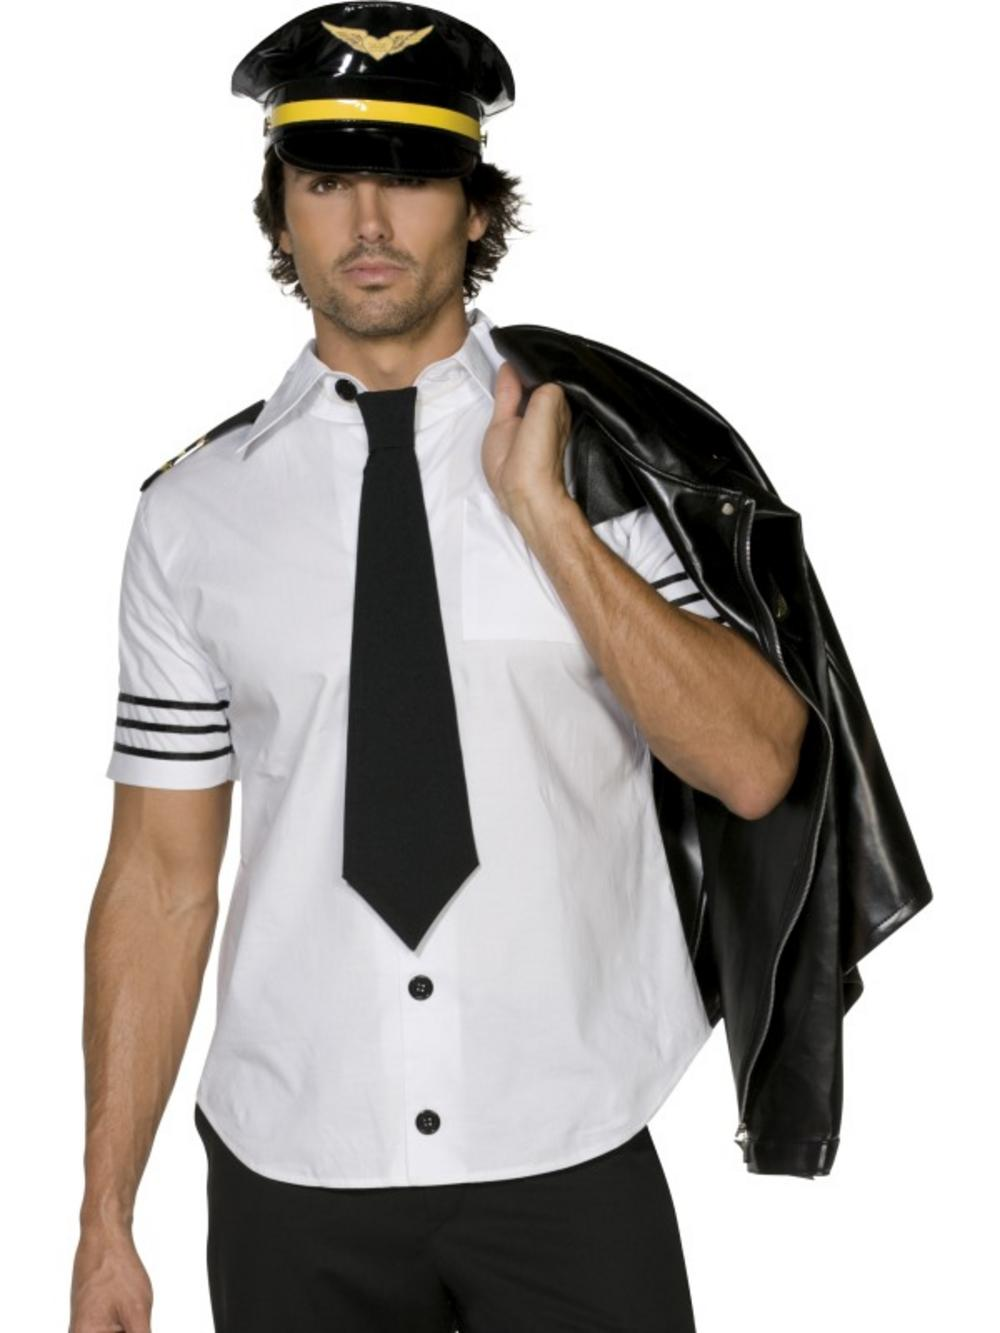 Mile high pilot sexy adult costume